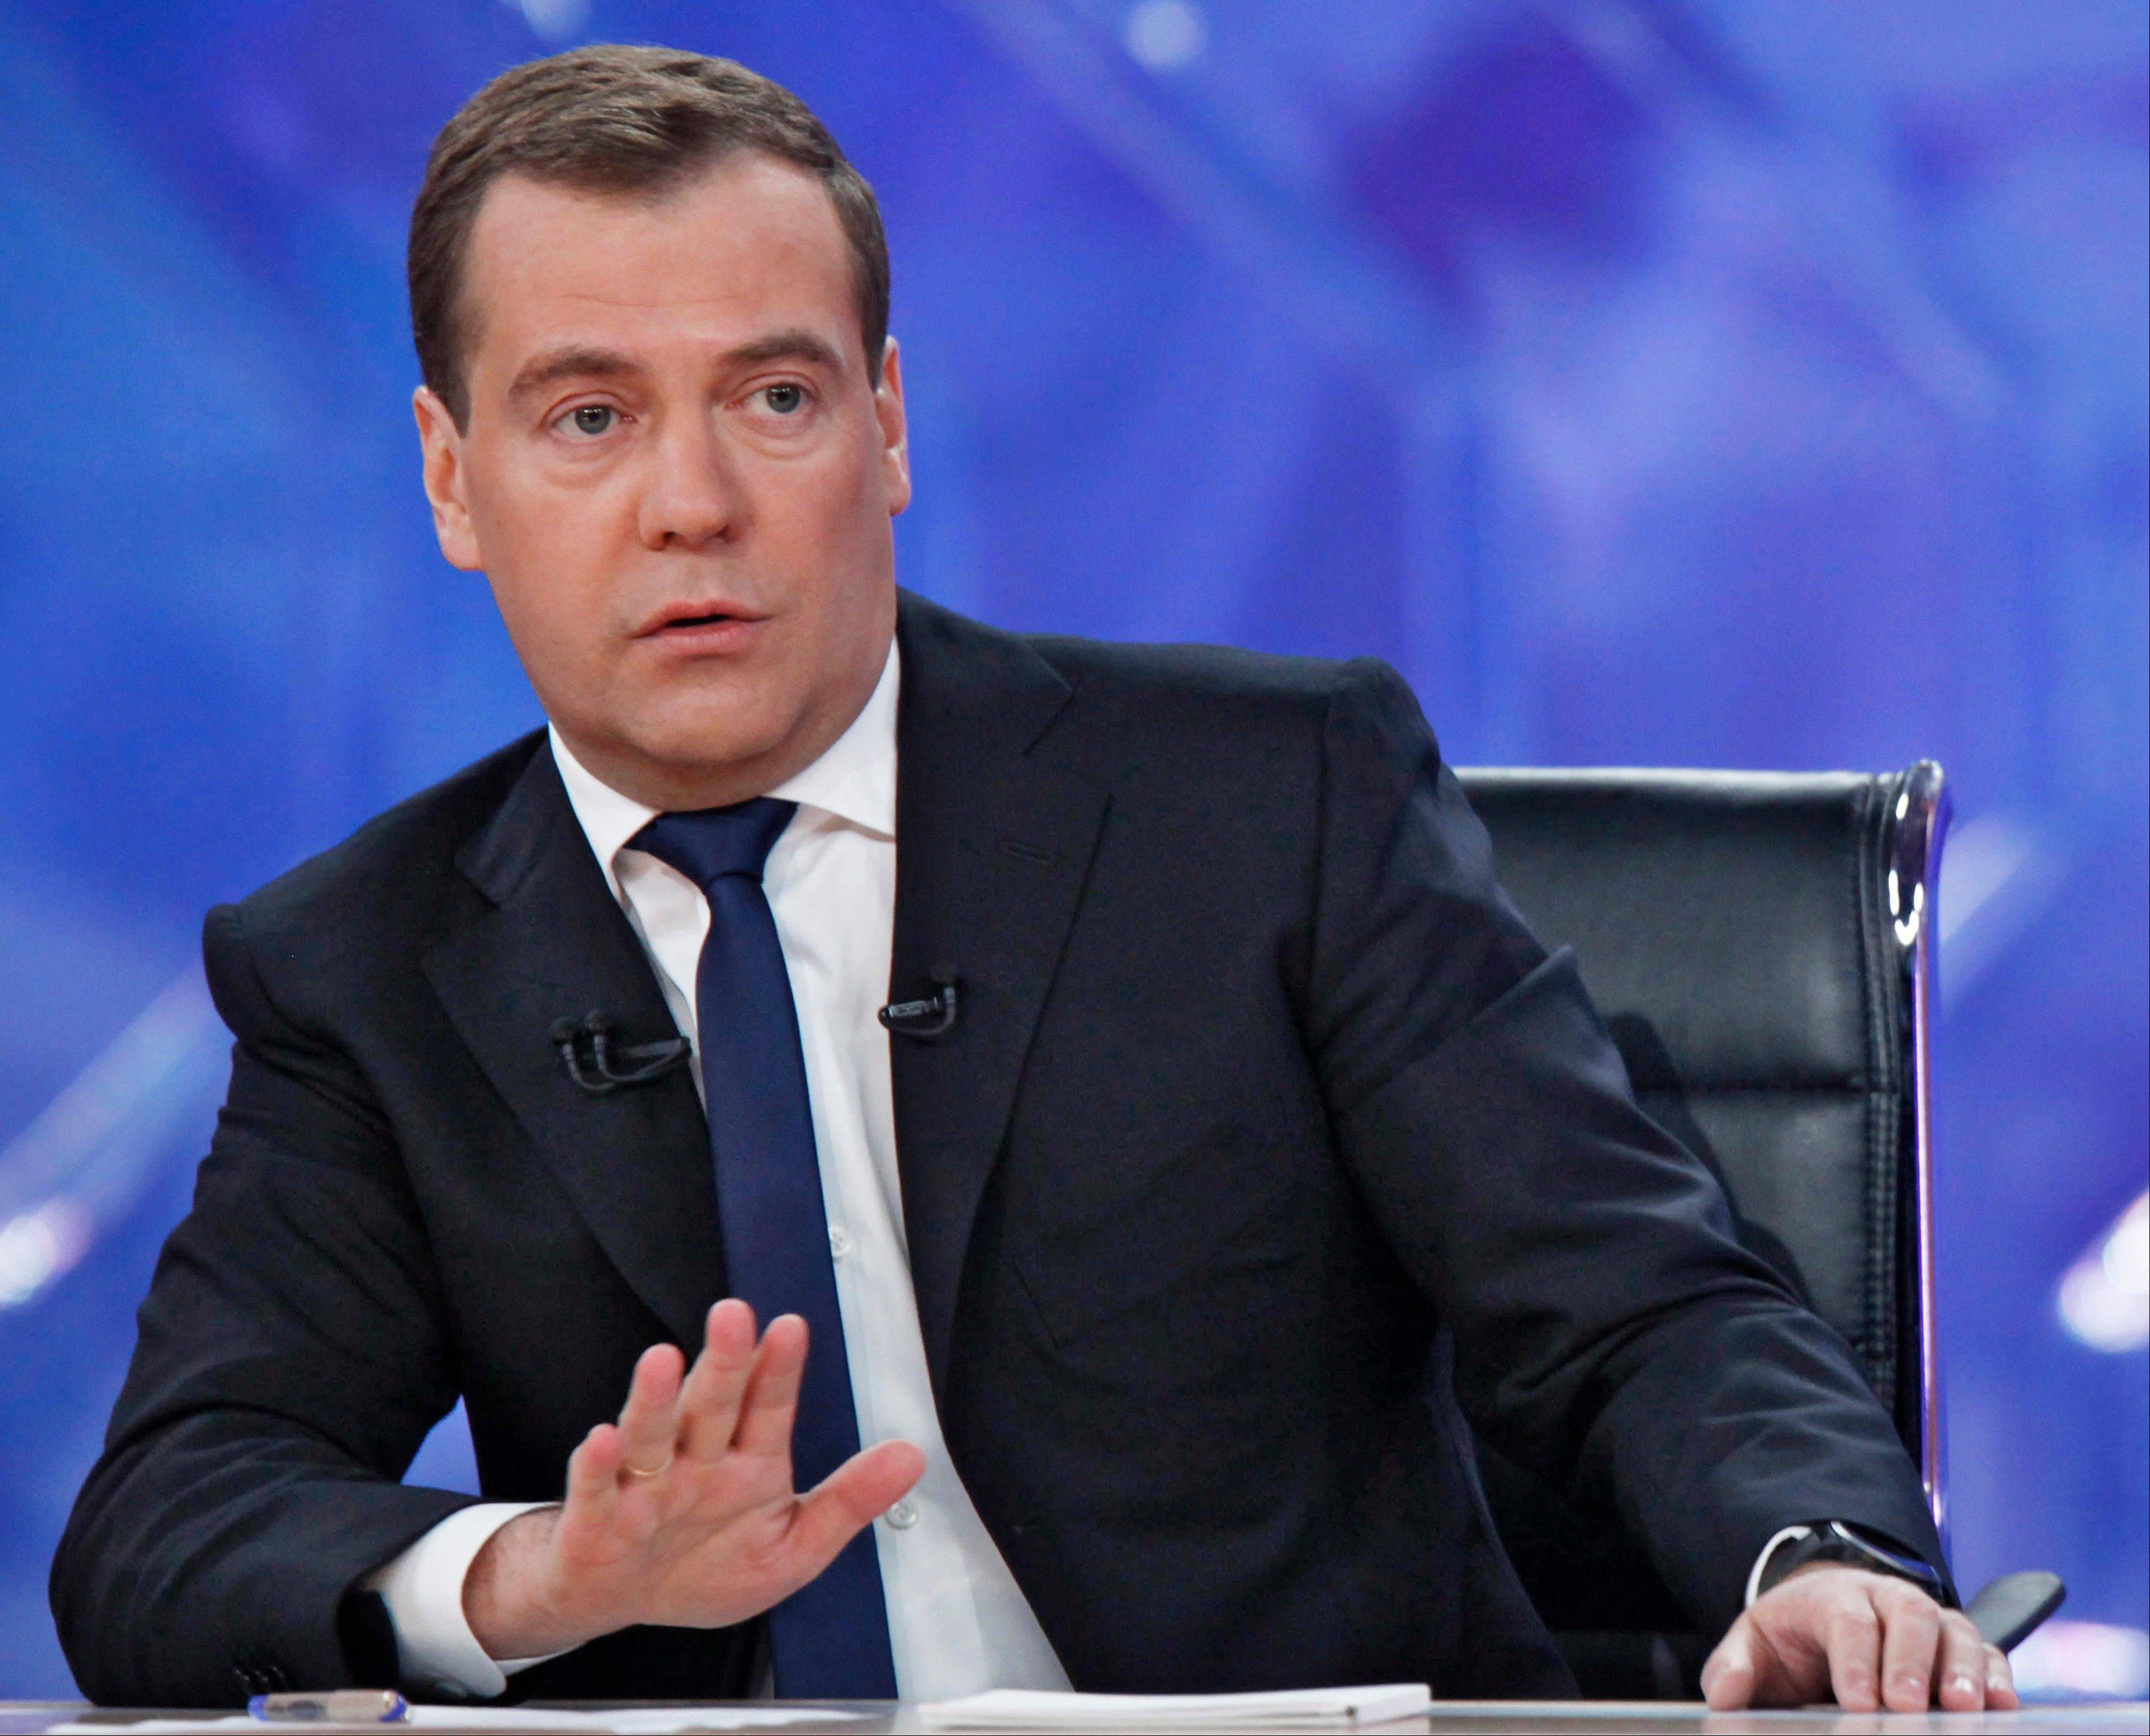 Russian Prime Minister Dmitry Medvedev speaks during live televised interview from Moscow's Ostankino TV Center on Friday.